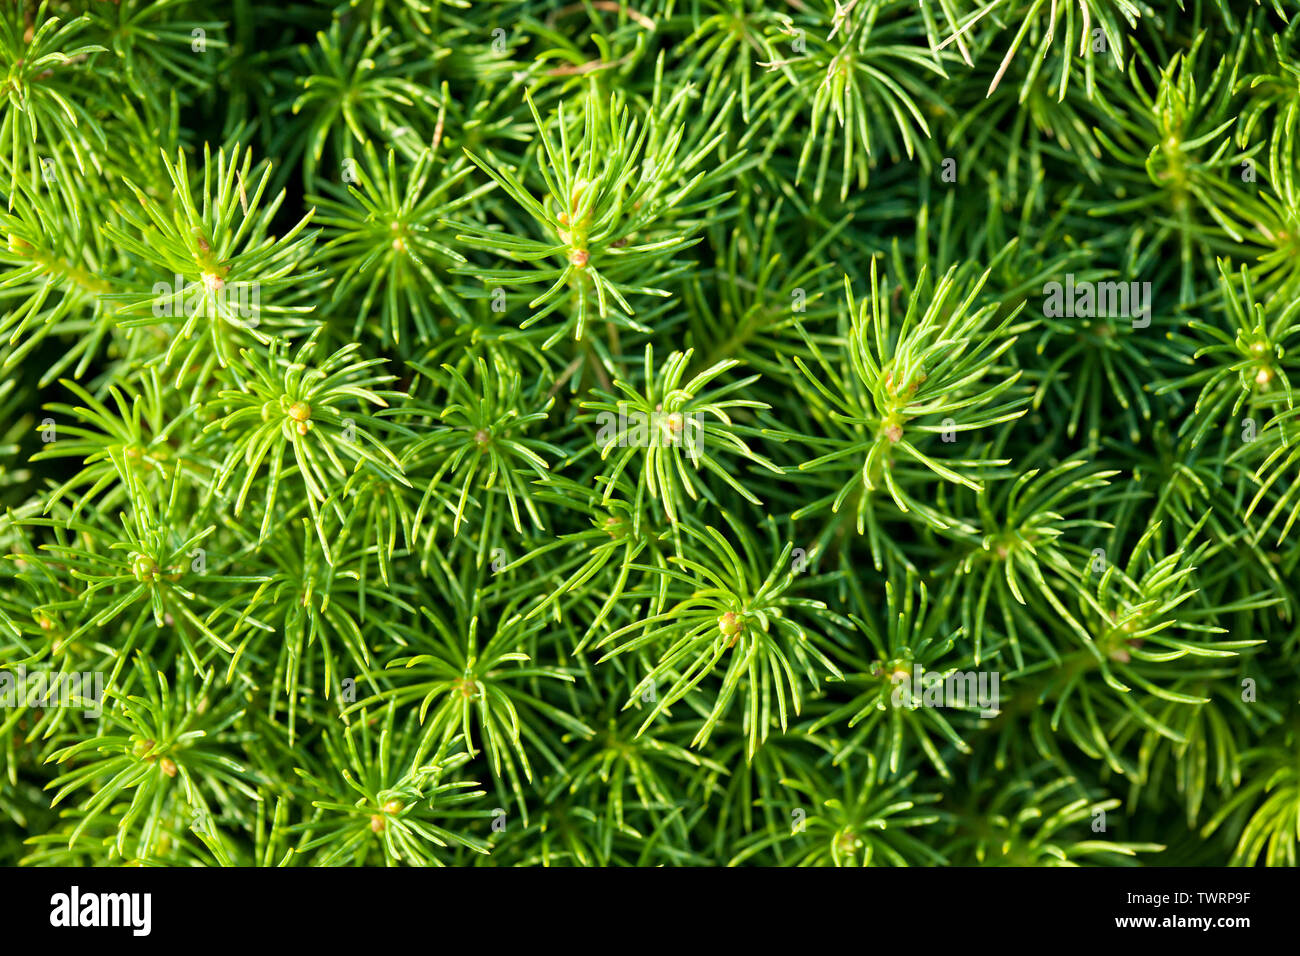 CloseUp of a leafs of a pine tree. All green photo. - Stock Image